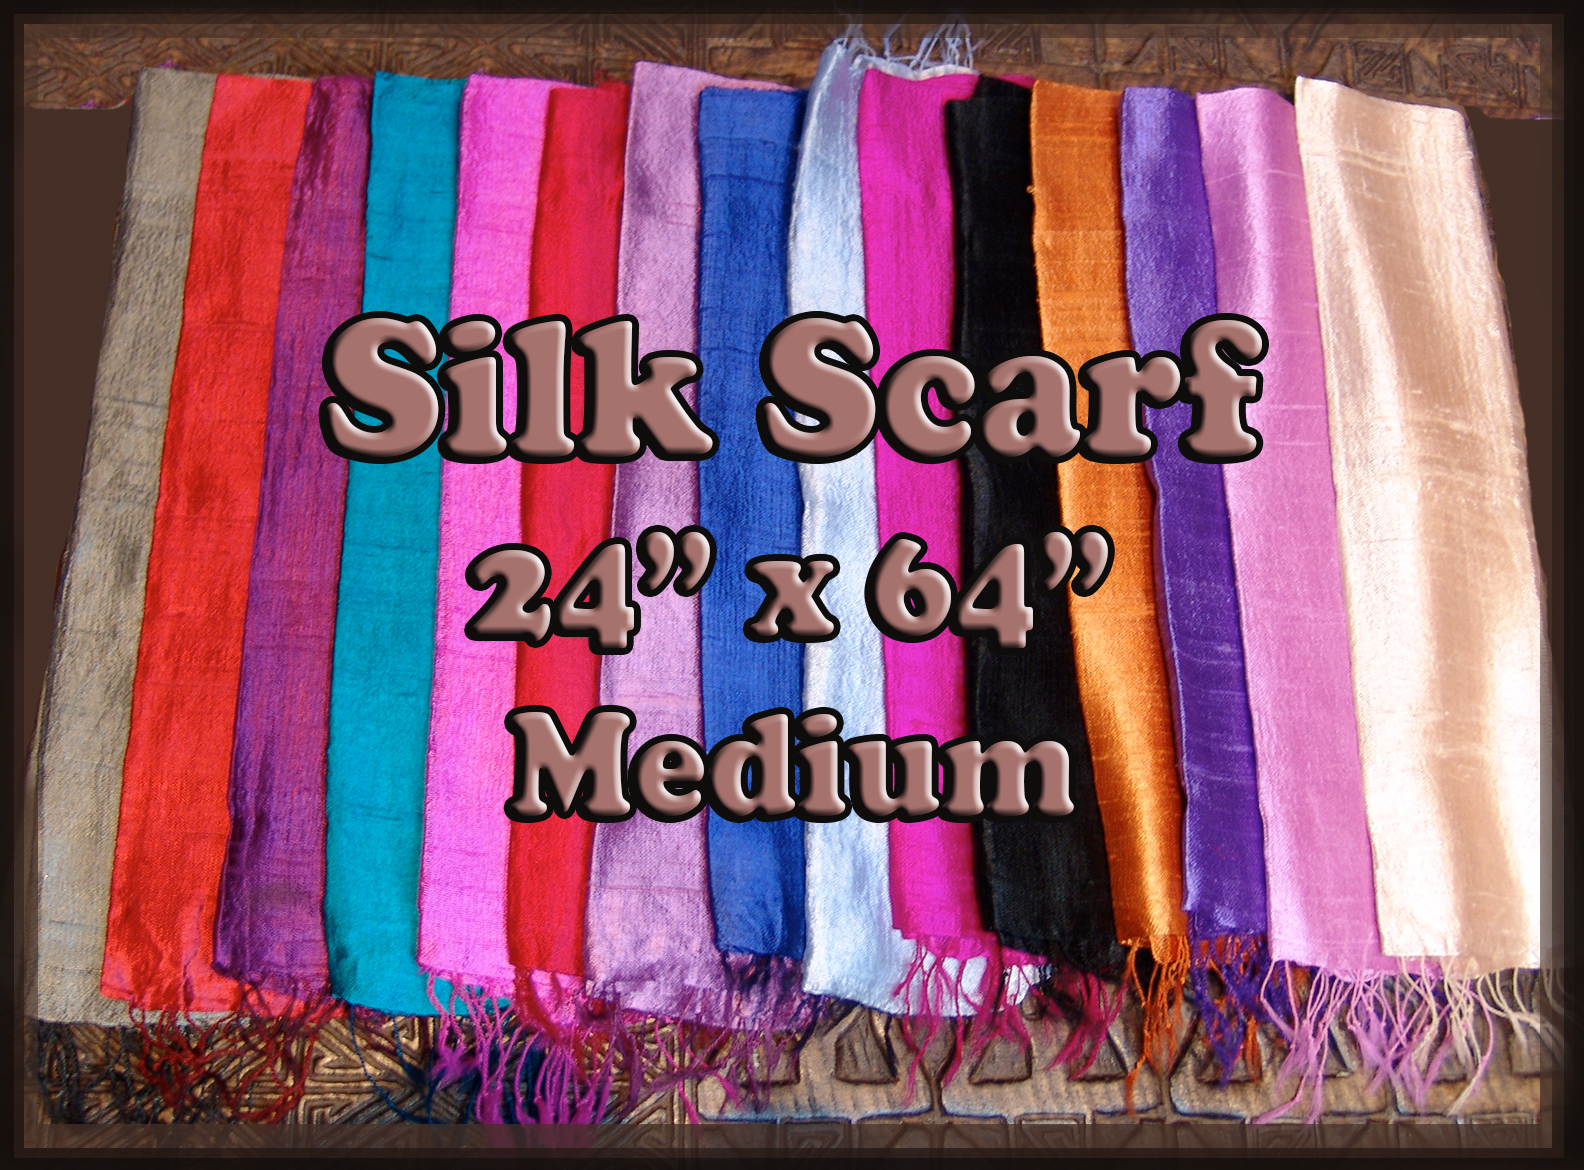 Silk Scarf - Medium